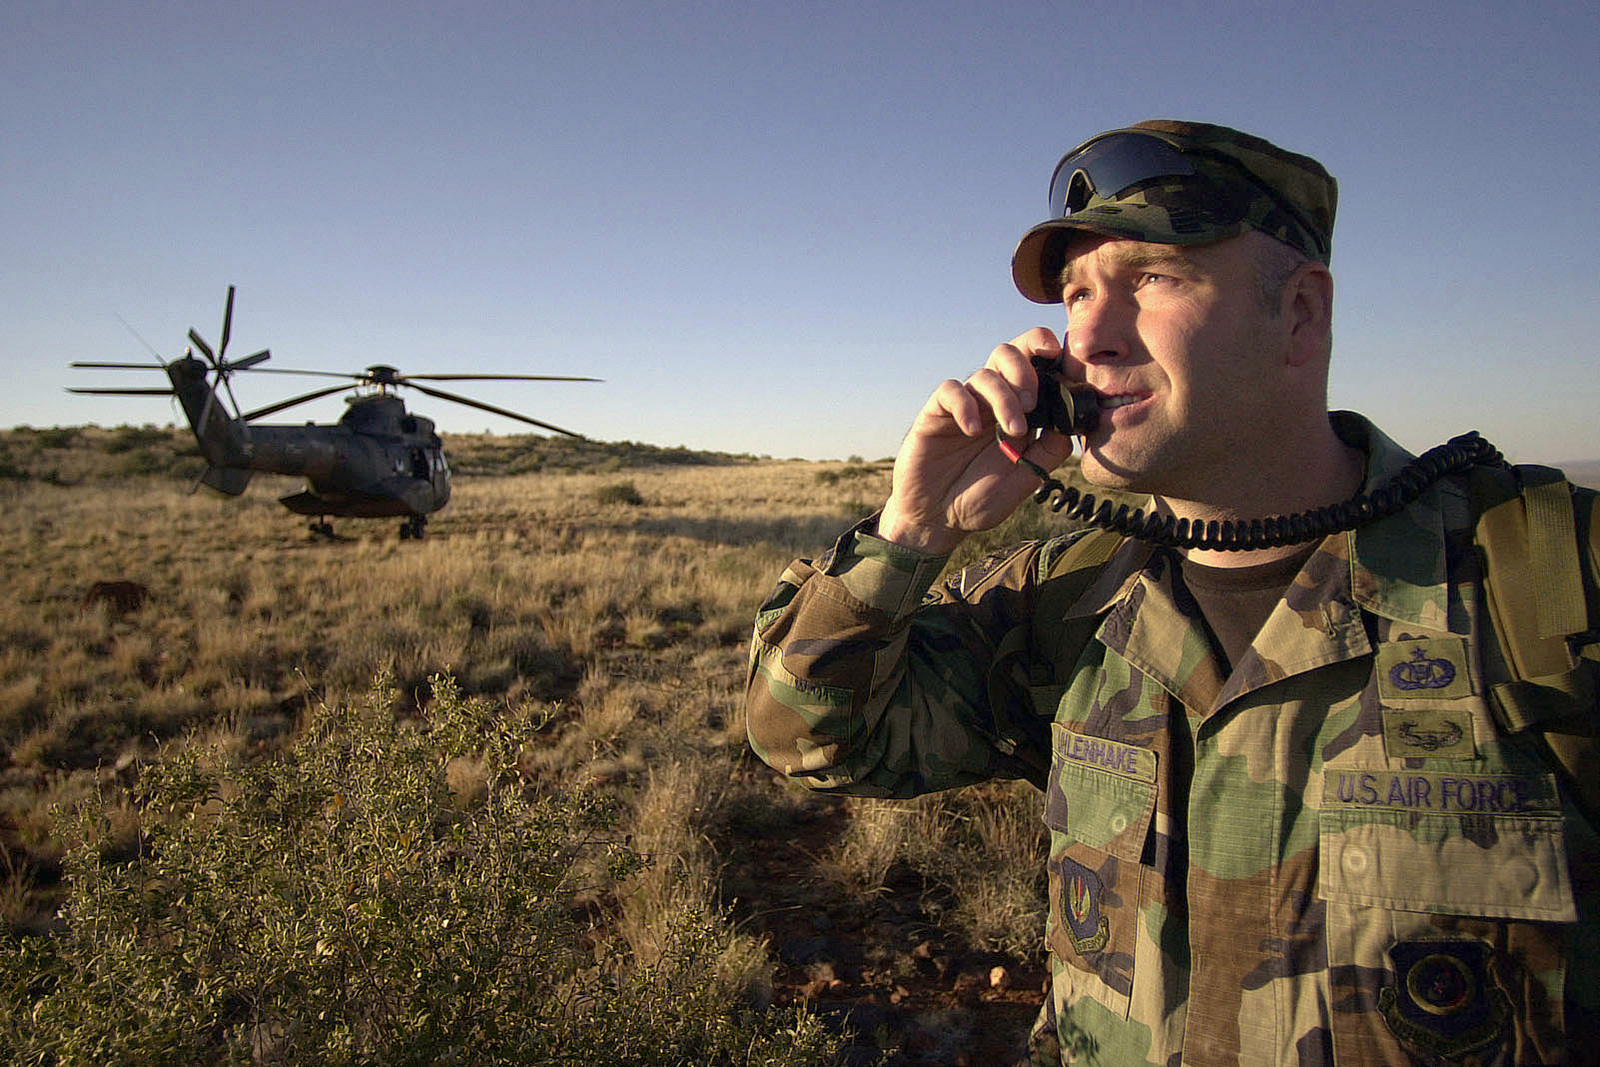 US Air Force (USAF) Technical Sergeant (TSGT) John Uhlenhake, 3 Air Force, Royal Air Force (RAF) Base Mildenhall, England, establishes communications with a B-1 Lancer bomber at the Lothala Range, Northern Province, Army Battle School, near Waterkloof, Air Force Base (AFB), Pretoria, South Africa